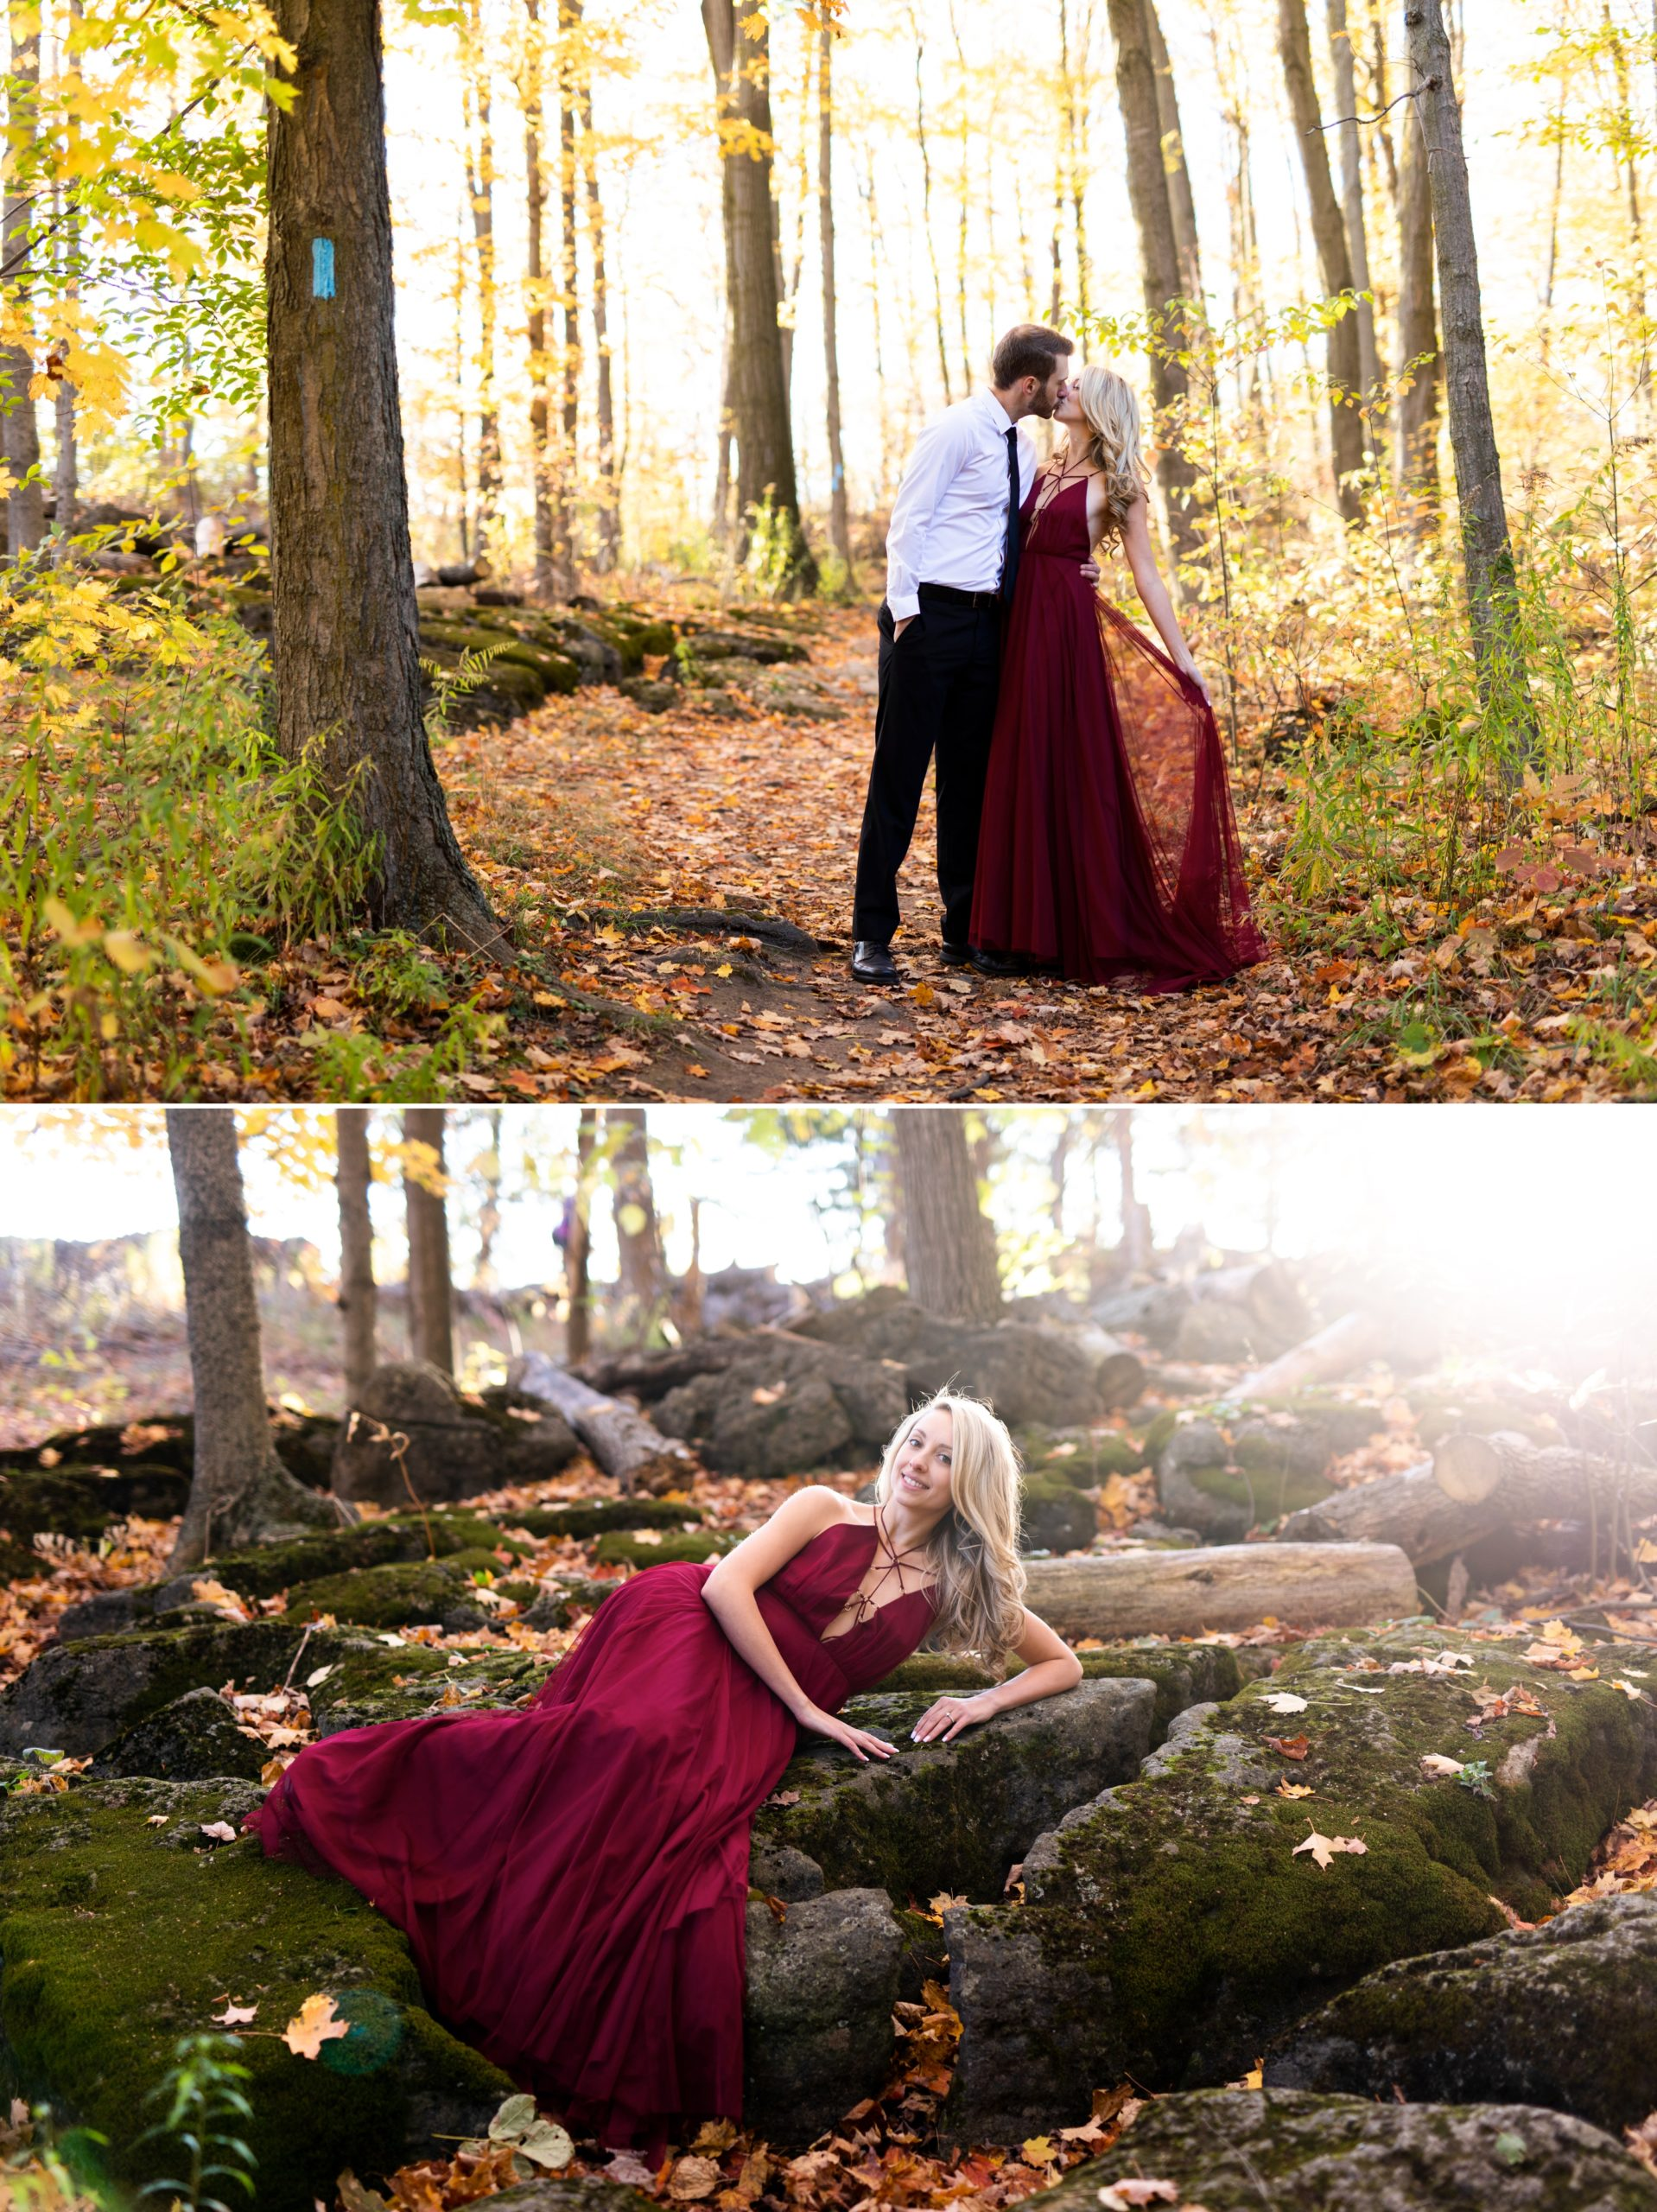 Moss Red Dress Rattlesnake Point Fall Autumn Engagement Milton Zsuzsi Pal Photography